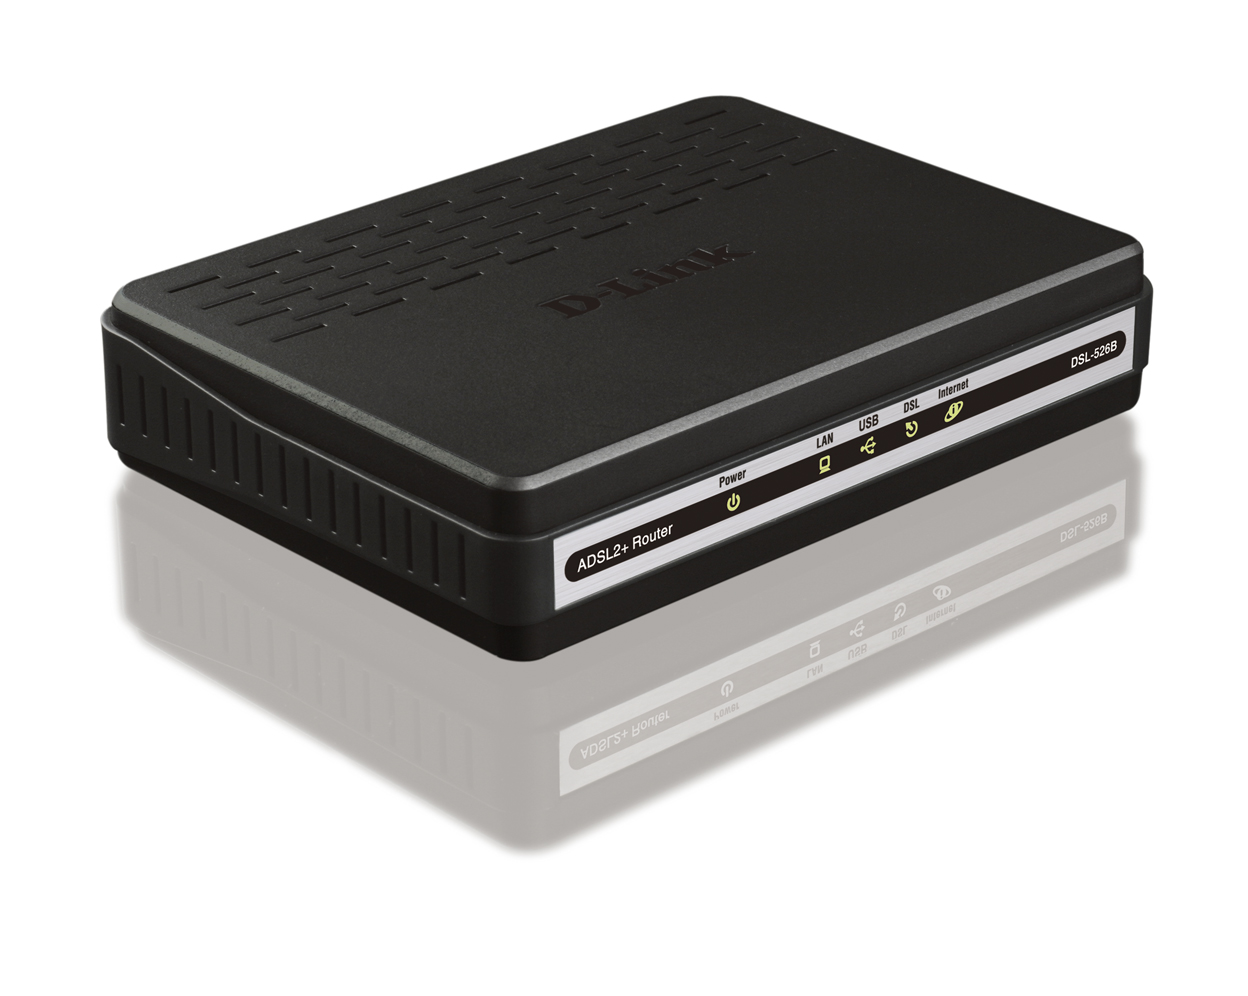 D Link Dsl 360r Adsl2 Modem Driver Download Merry Christmas 2700e Wireless N150 Adsl Router Plus With N300